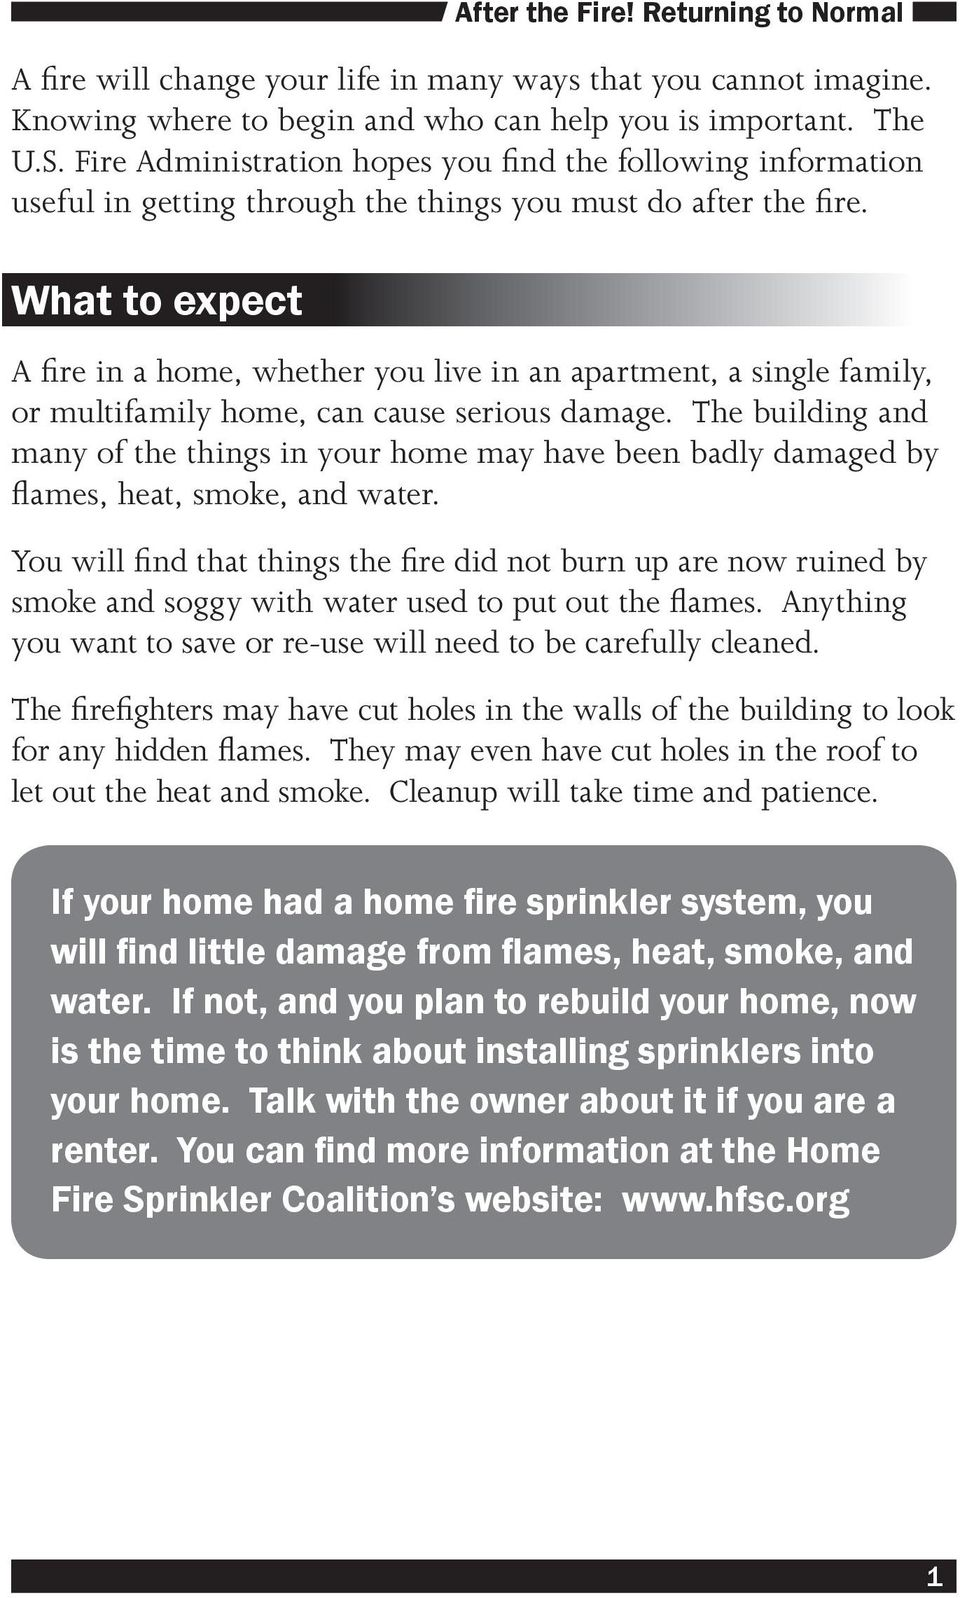 What to expect A fire in a home, whether you live in an apartment, a single family, or multifamily home, can cause serious damage.